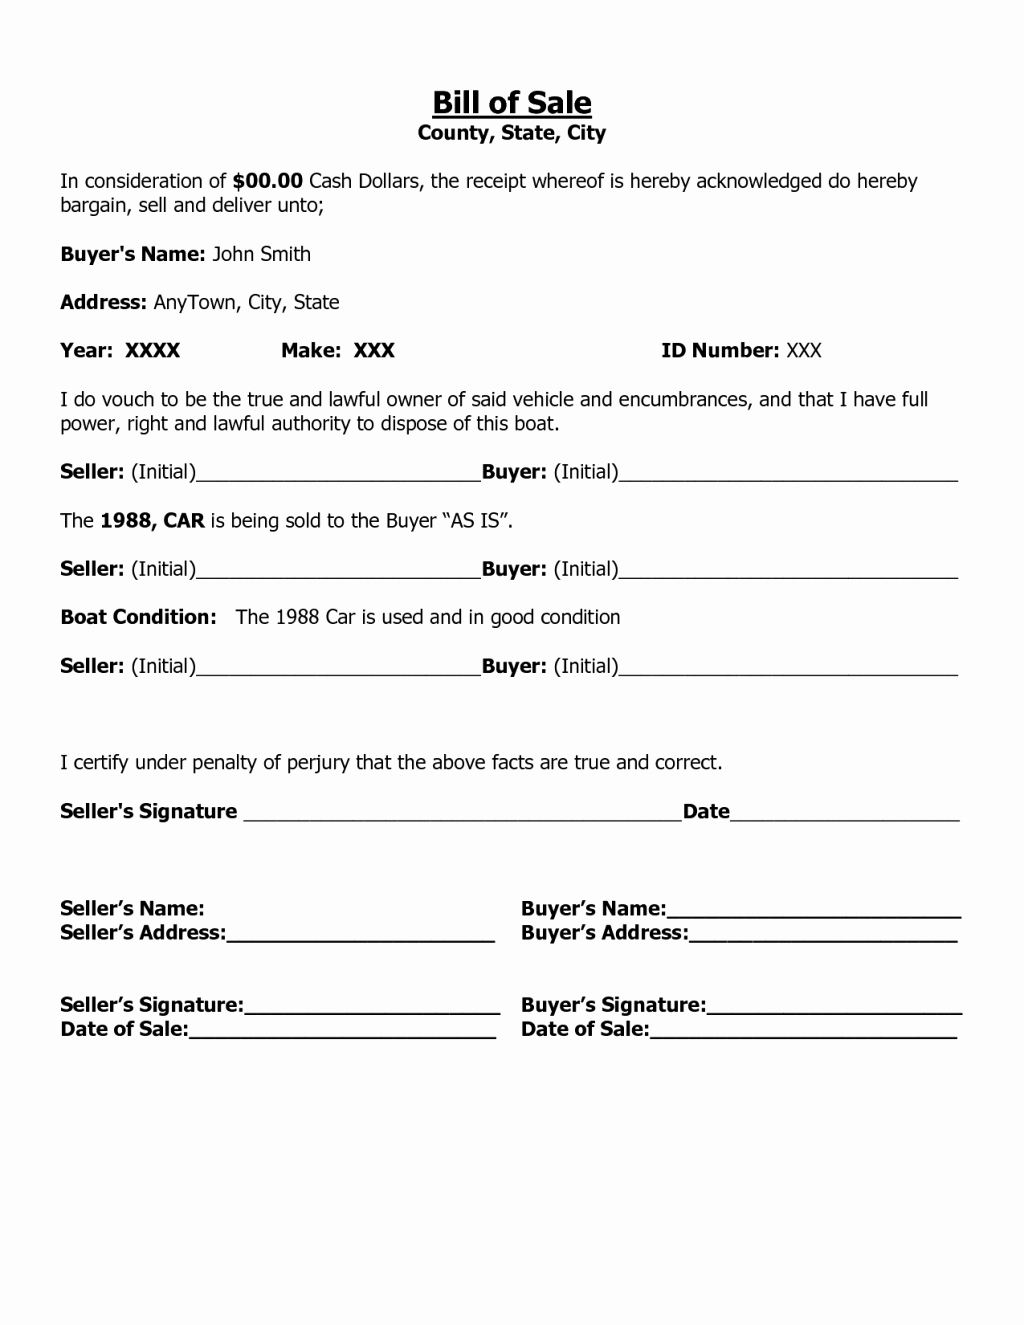 Bill Sale Sample Document Free Blank Invoice form